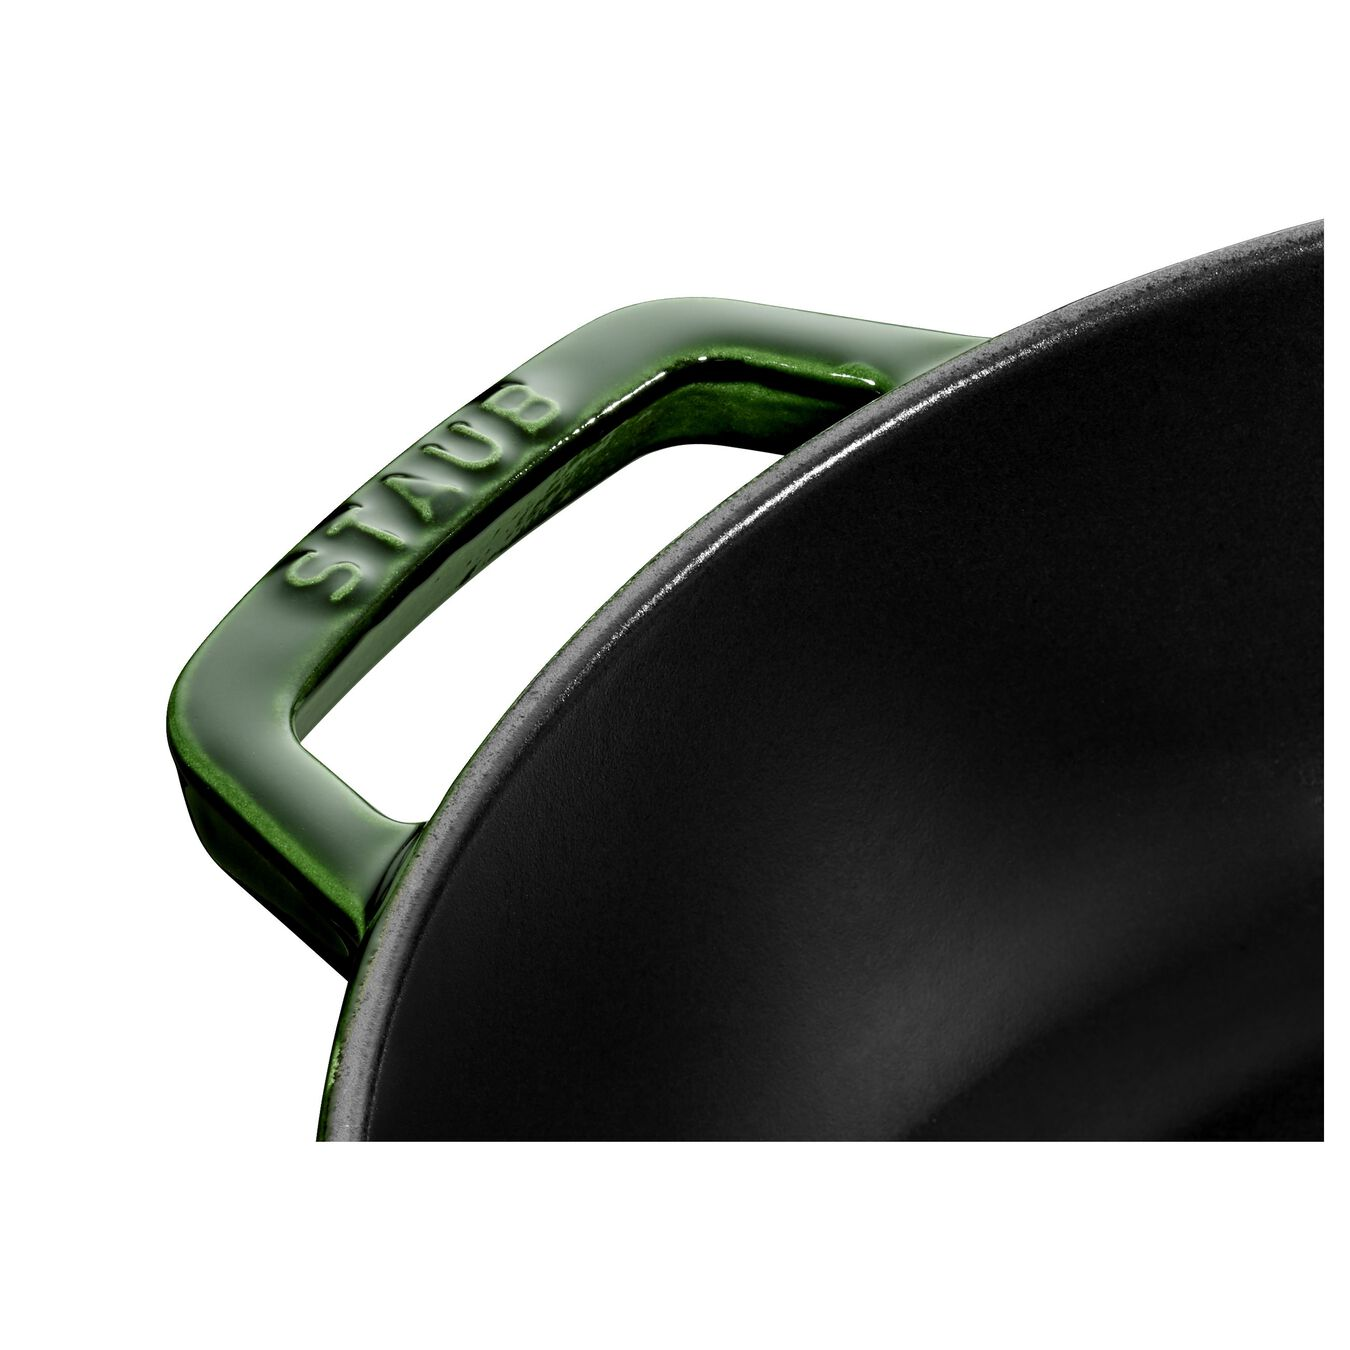 2.5 l Cast iron round Saute pan Chistera, Basil-Green,,large 5